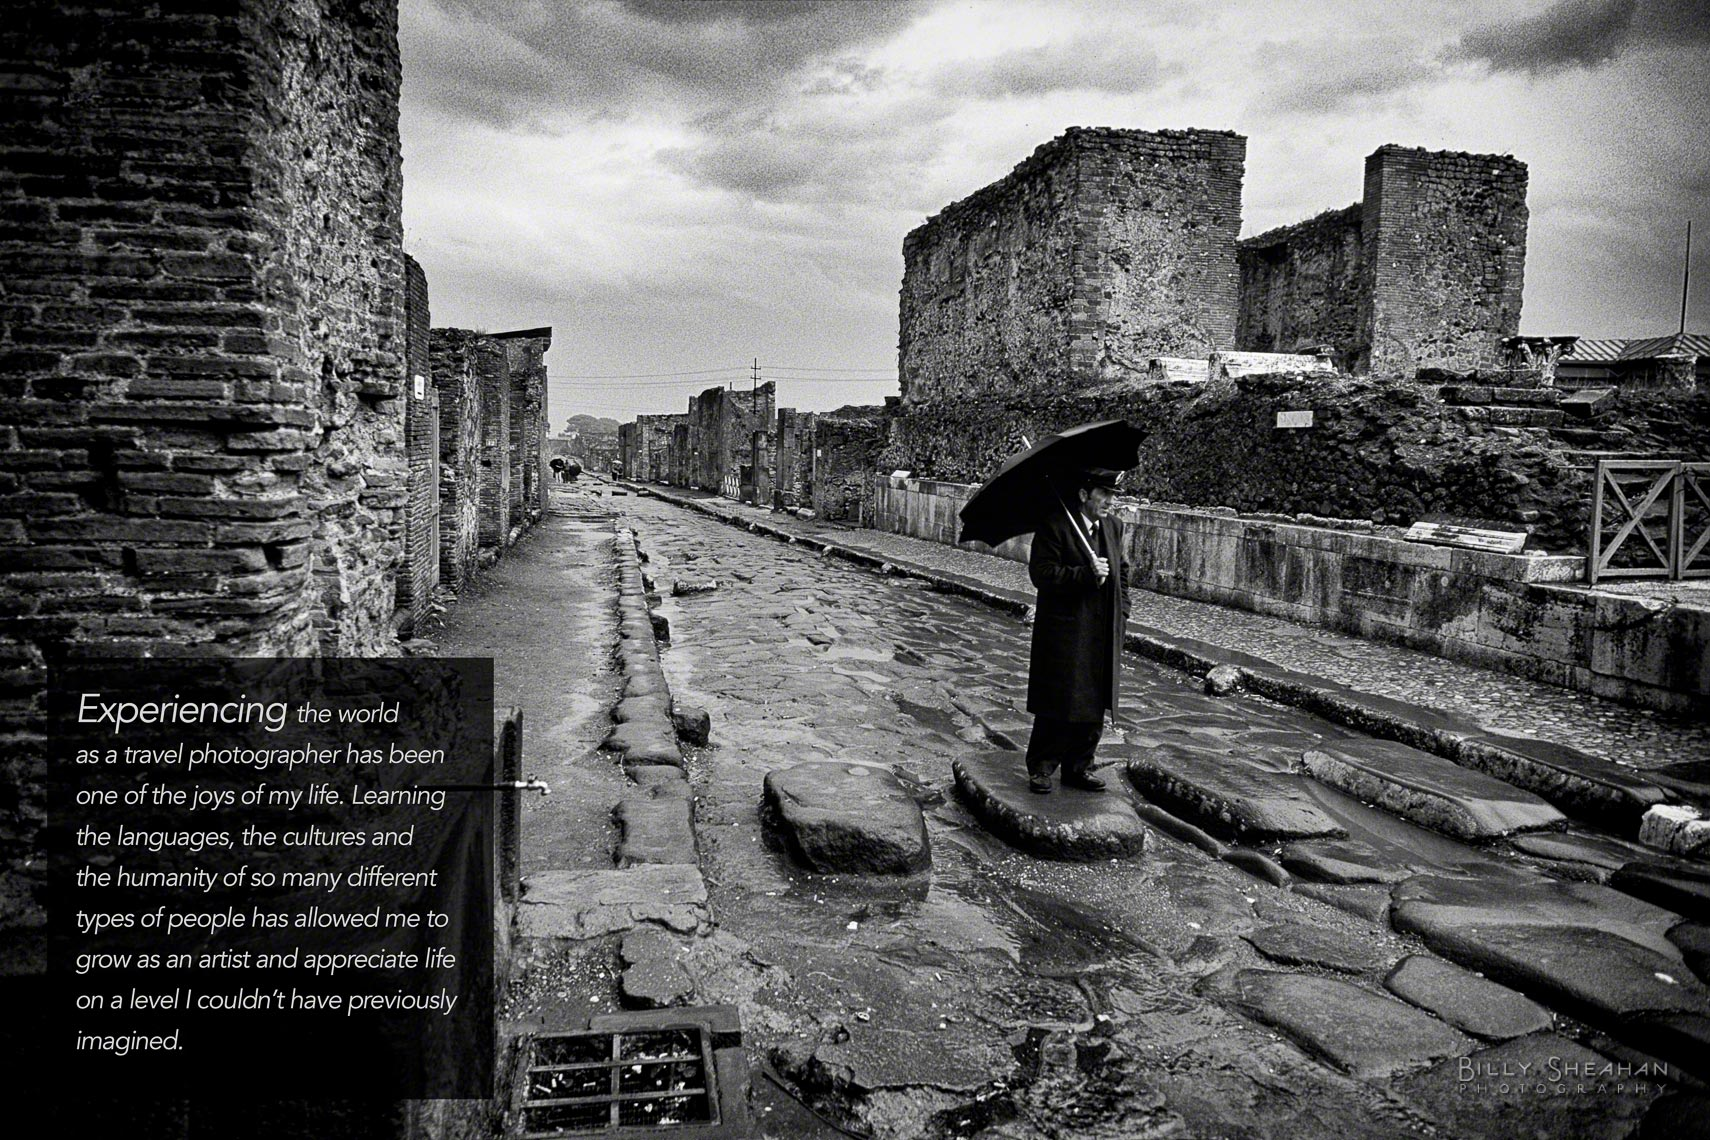 Pompeii_Man_With_Unbrella_Intro_Italy-132_32_BW_T_D.jpg